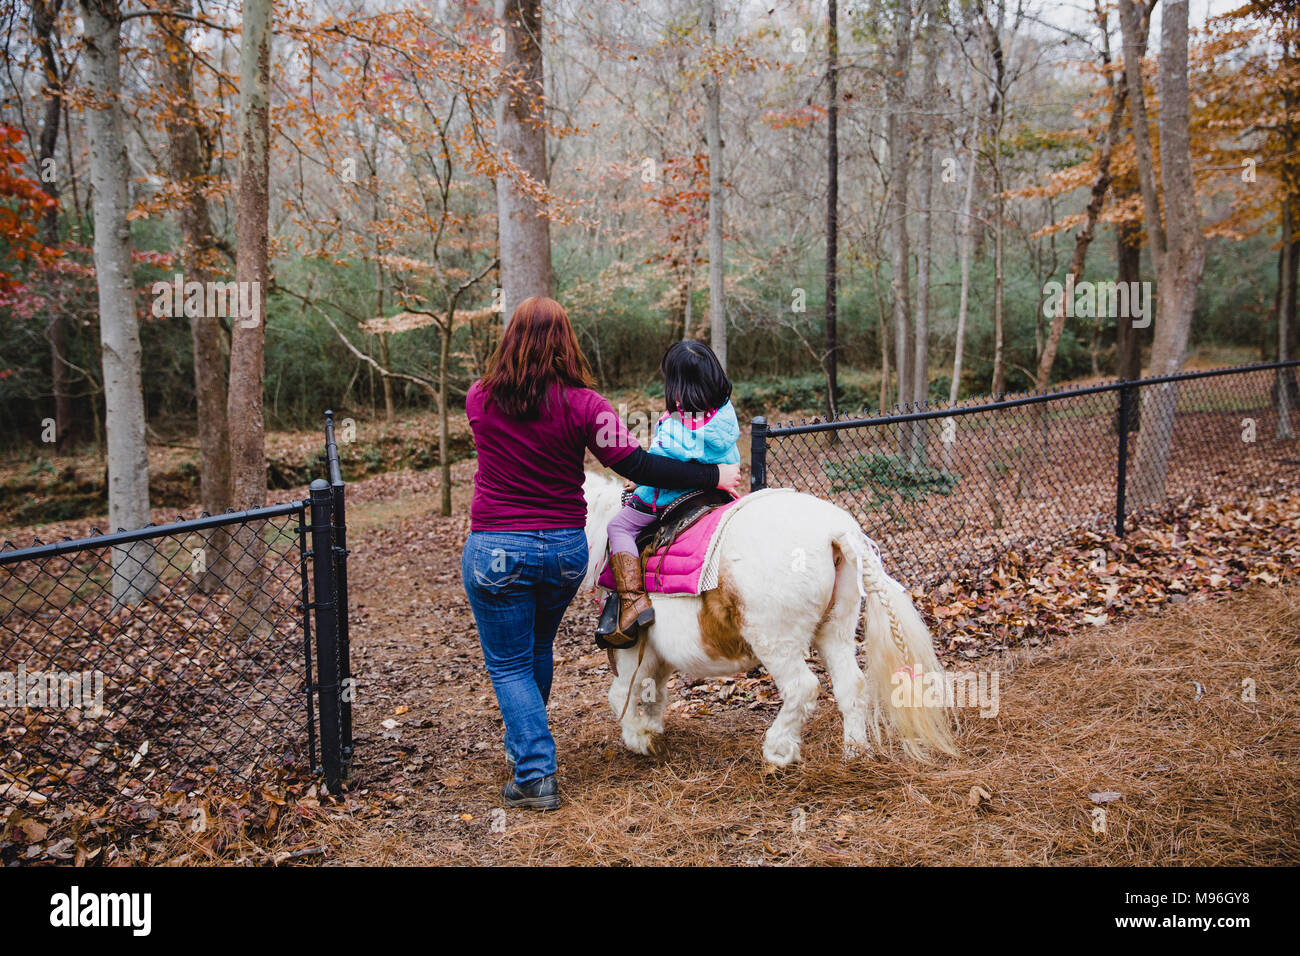 Girl being guided through woods on horseback - Stock Image